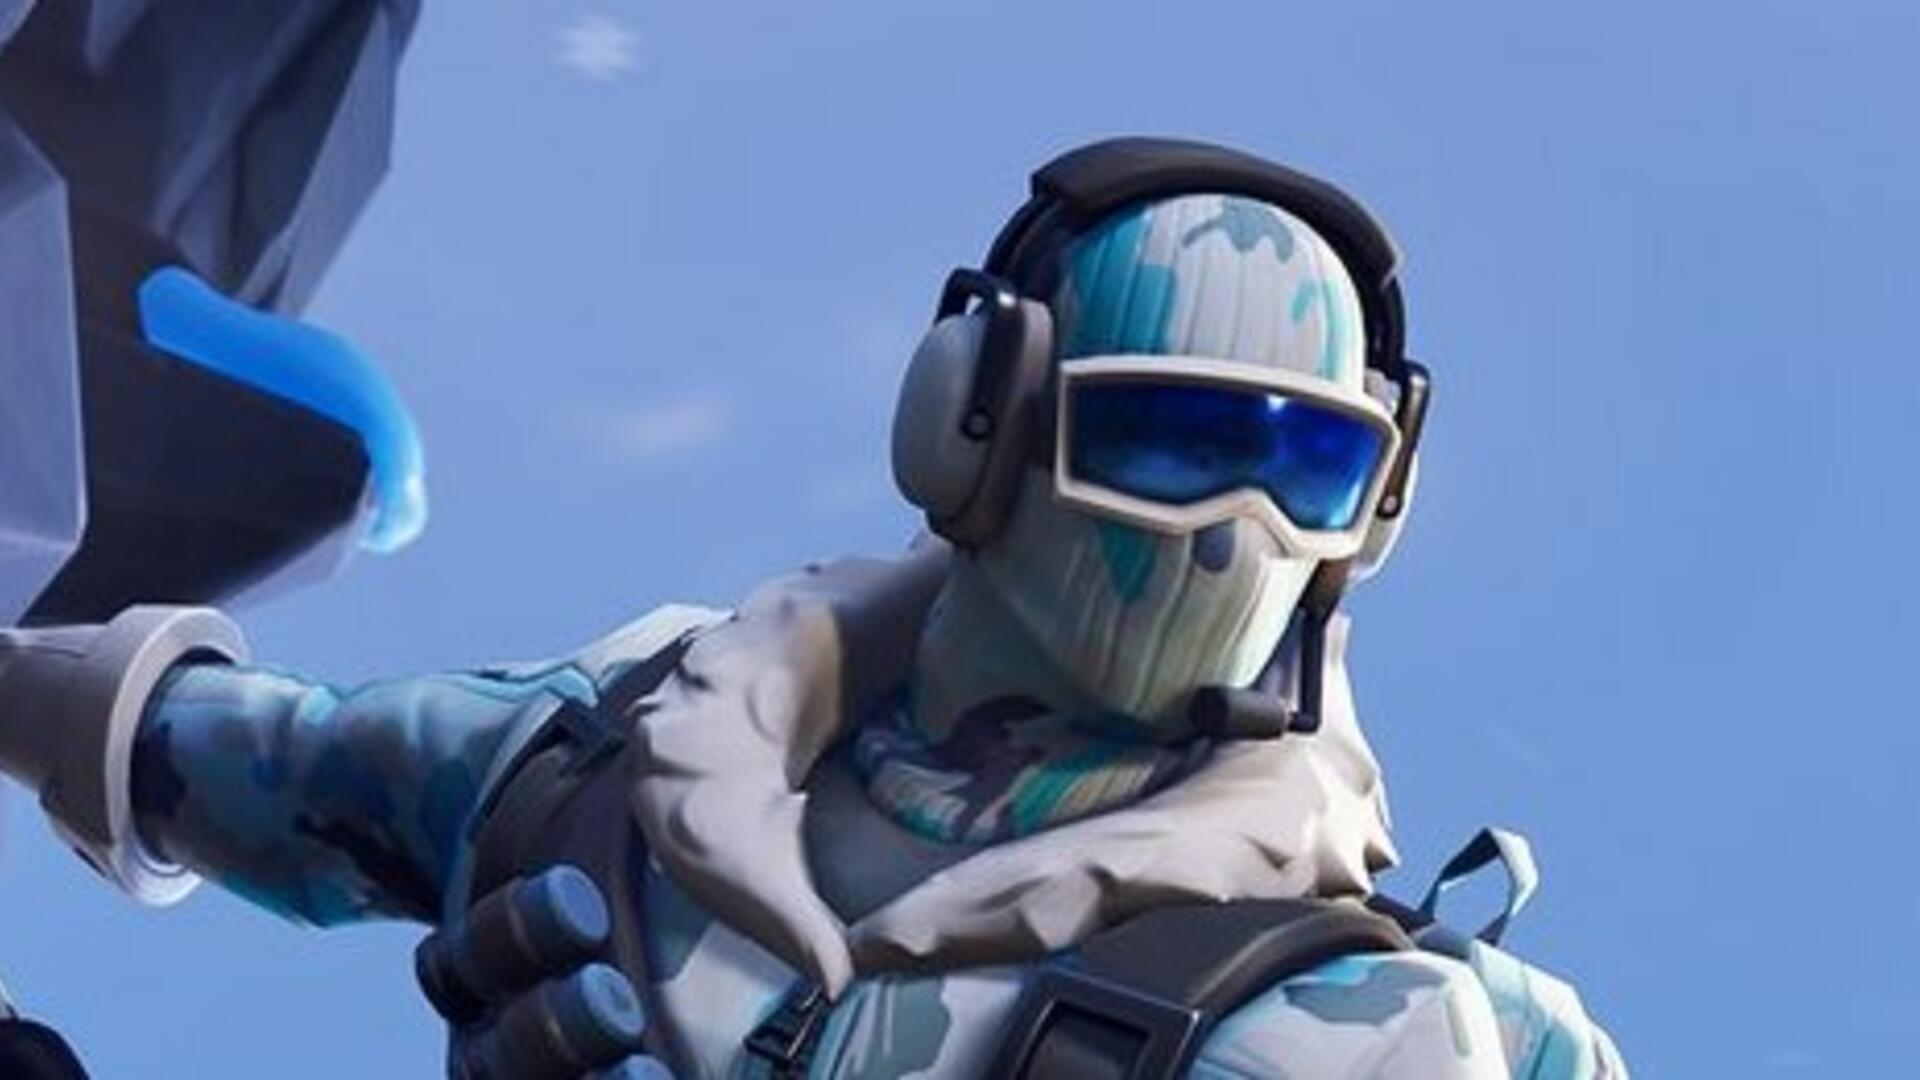 Fortnite Week 8 Challenges - How to Complete All Season 7, Week 8 Battle Pass Challenges